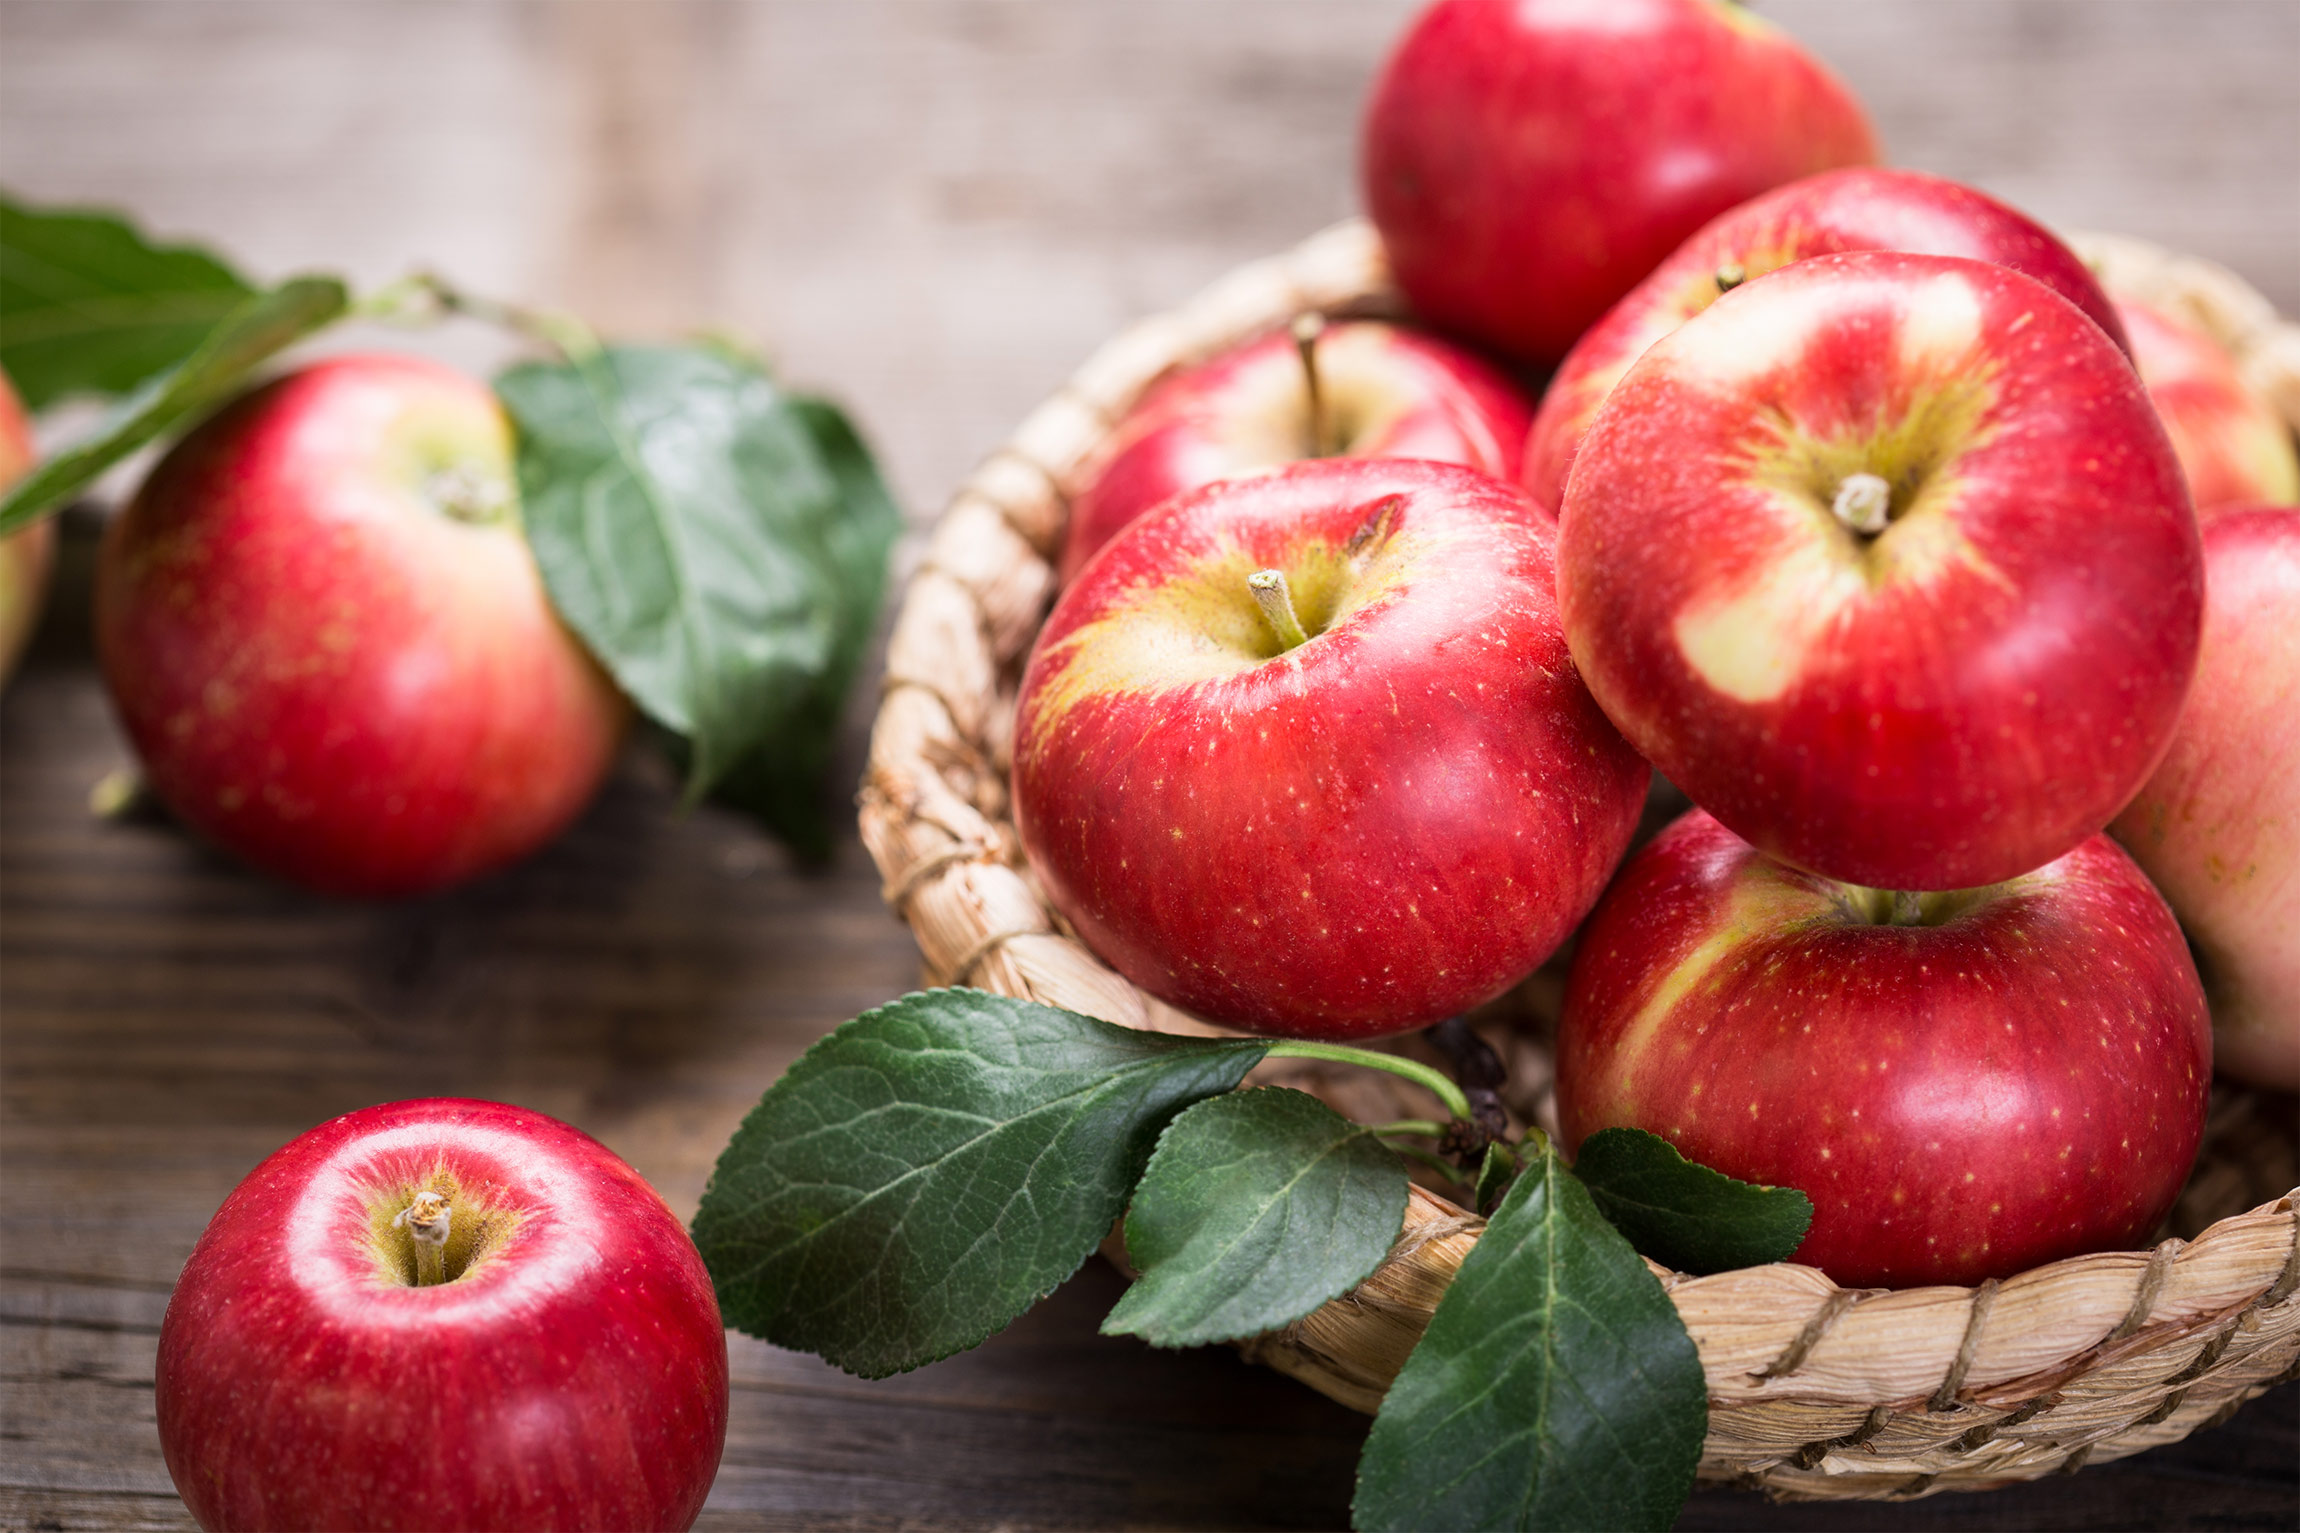 Fall fruits and vegetables: what's in season? Apples